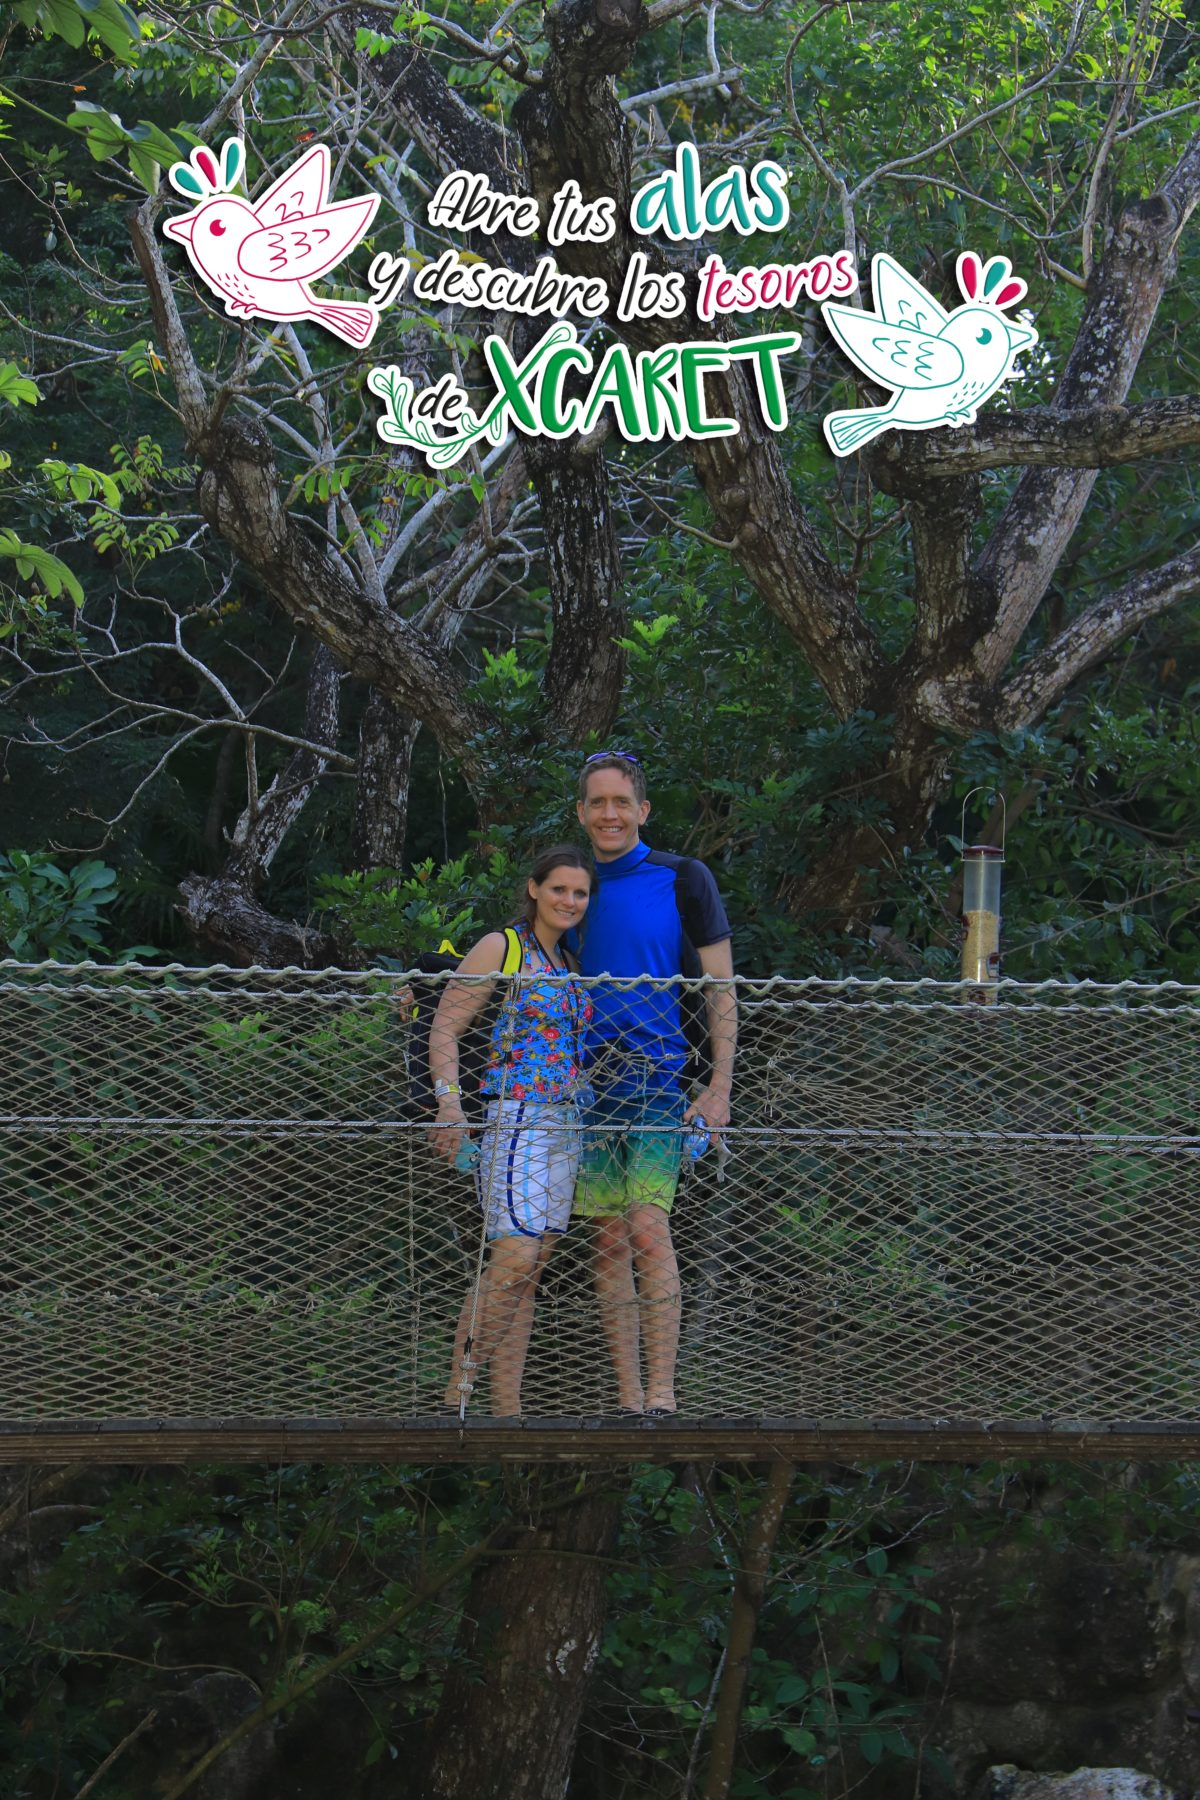 Activities at Xcaret - Aviary